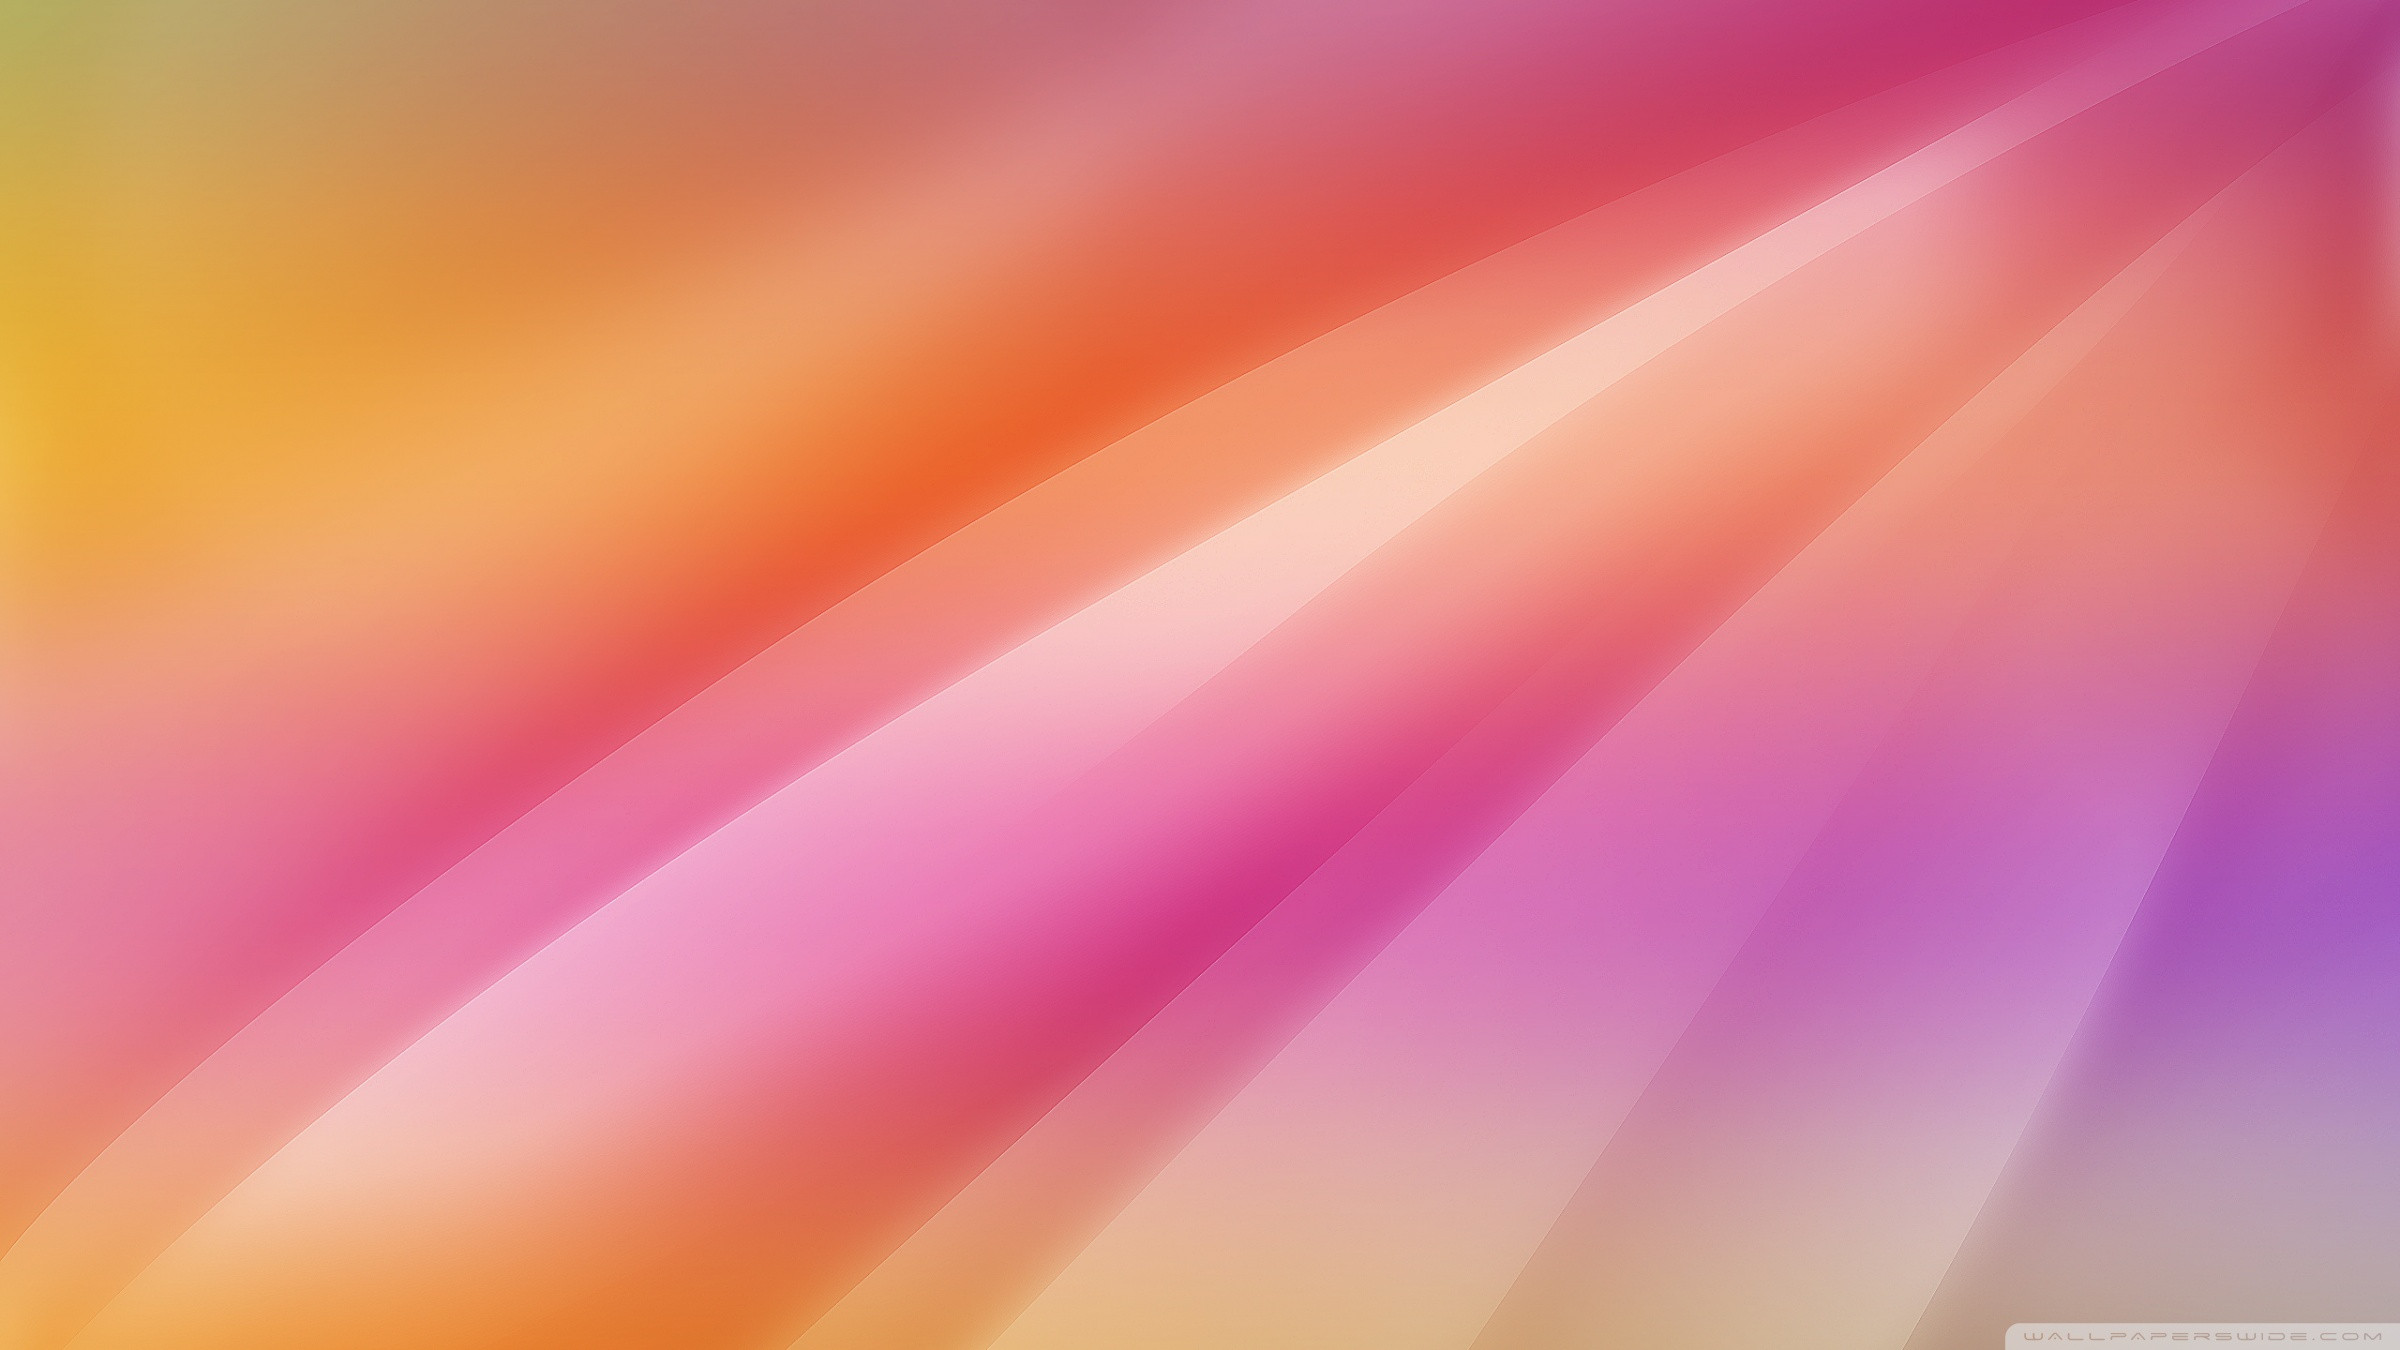 abstract graphic design warm colors wallpapers